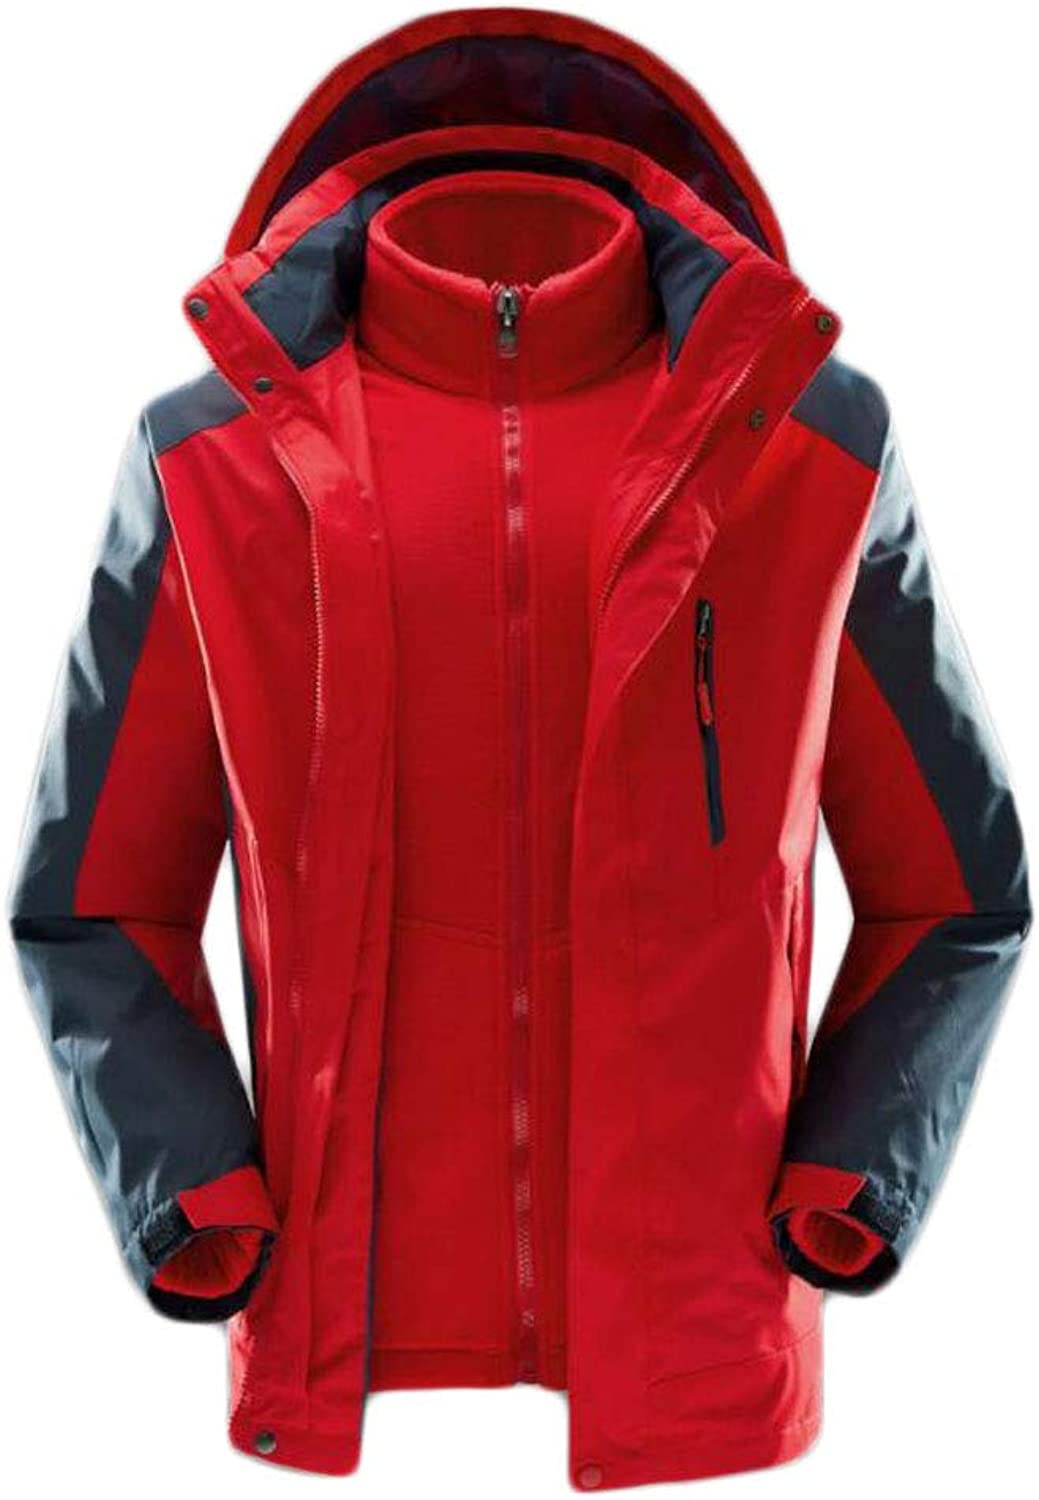 ZJEXJJ Men's winter thick cotton clothes loose large size winter three-in-one jacket winter jacket jacket (color   RED, Size   XXL)